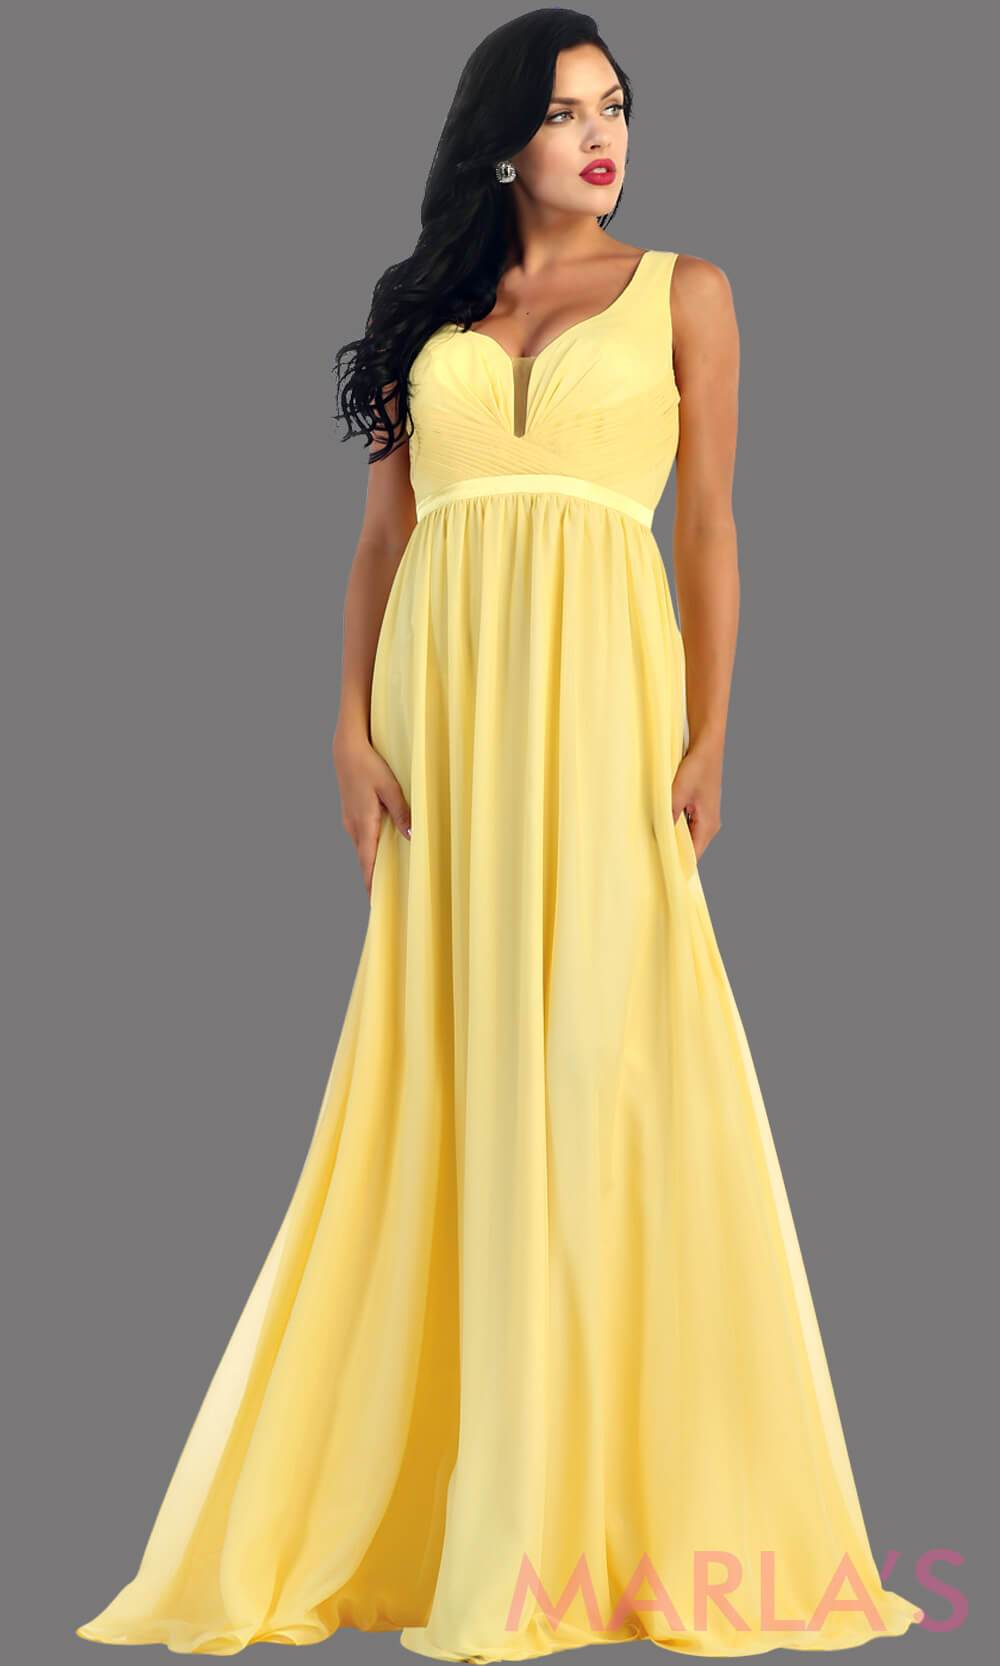 Long yellow dress with wide straps and v neck dress. This simple evening gown is perfect for a wedding guest dress, simple yellow prom dress, or even a bridesmaid dress. This dress is available in plus size